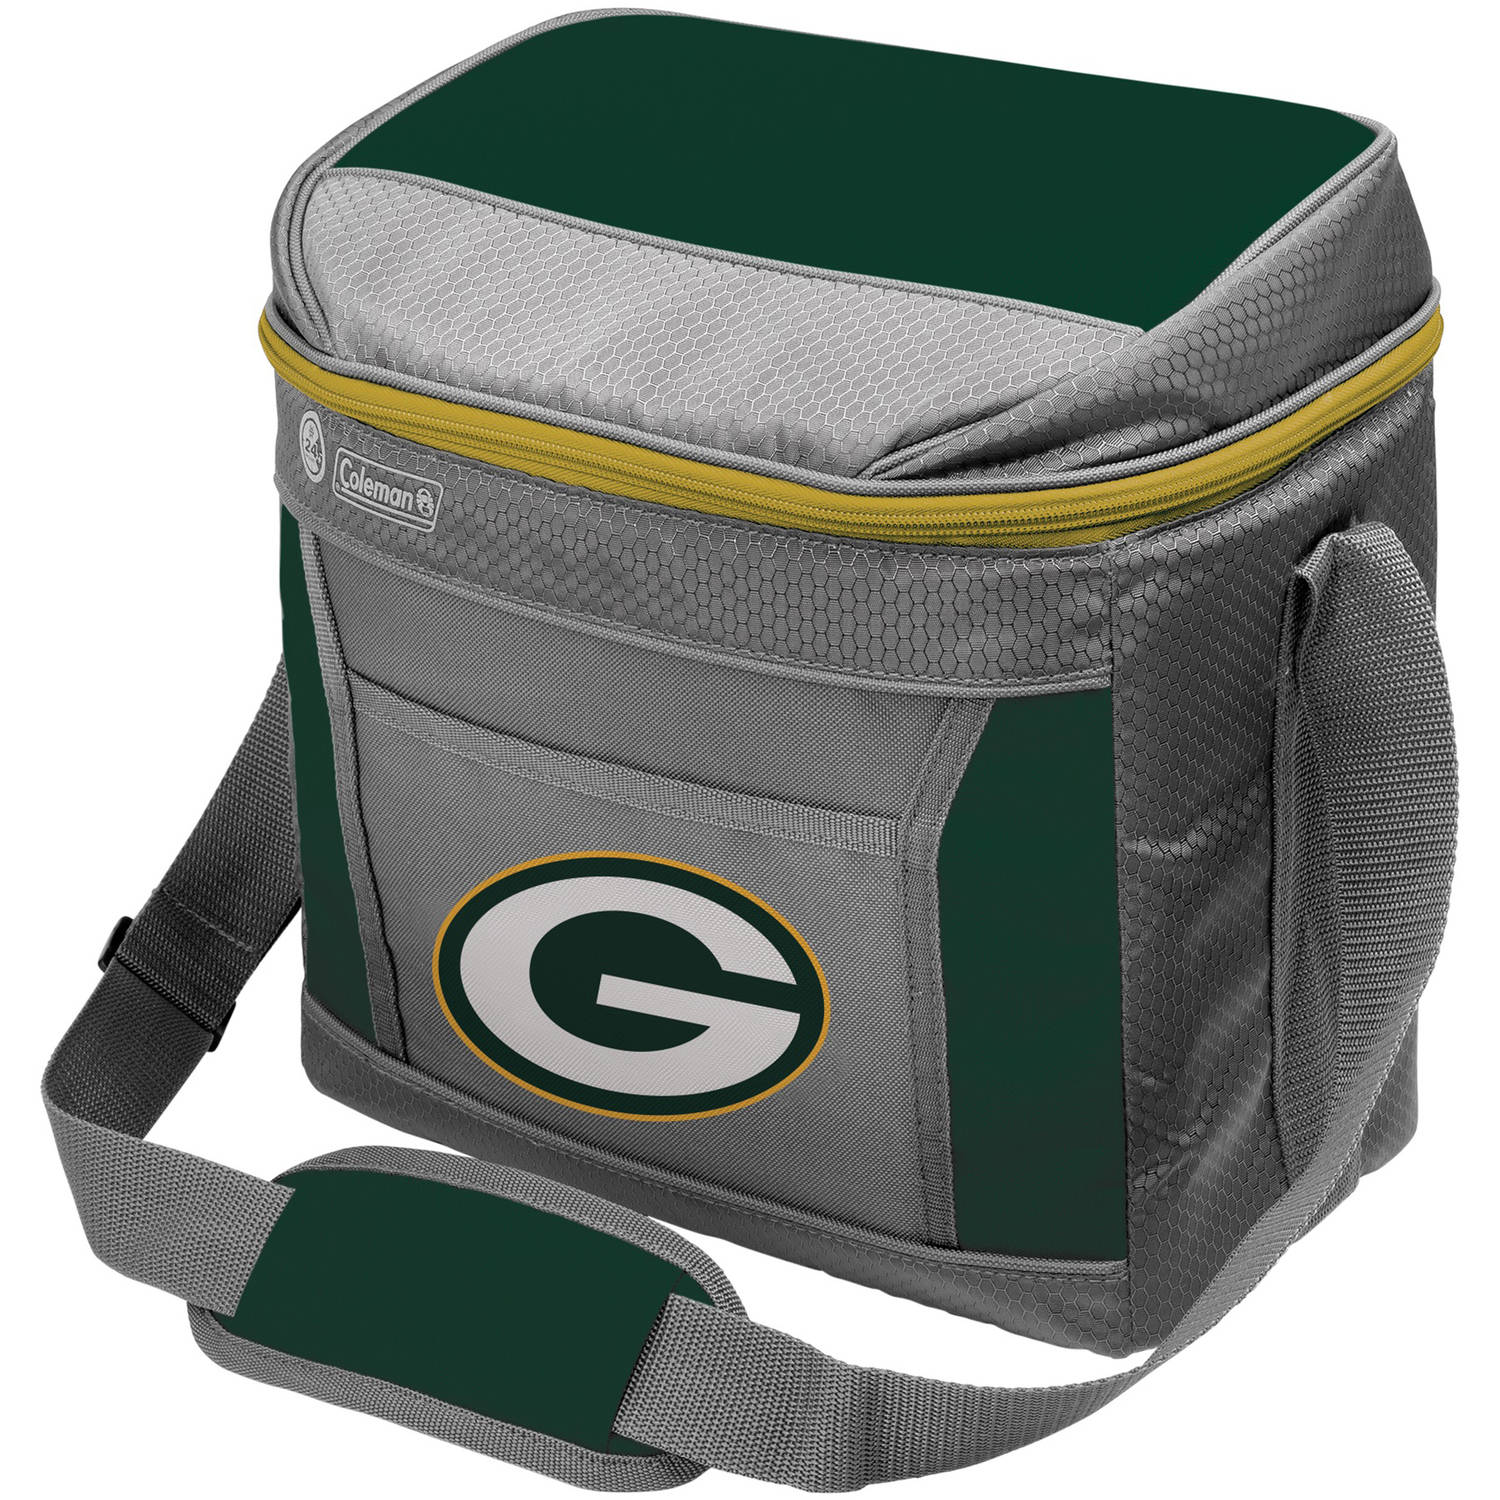 NFL 16-Can Soft-Sided Cooler, Green Bay